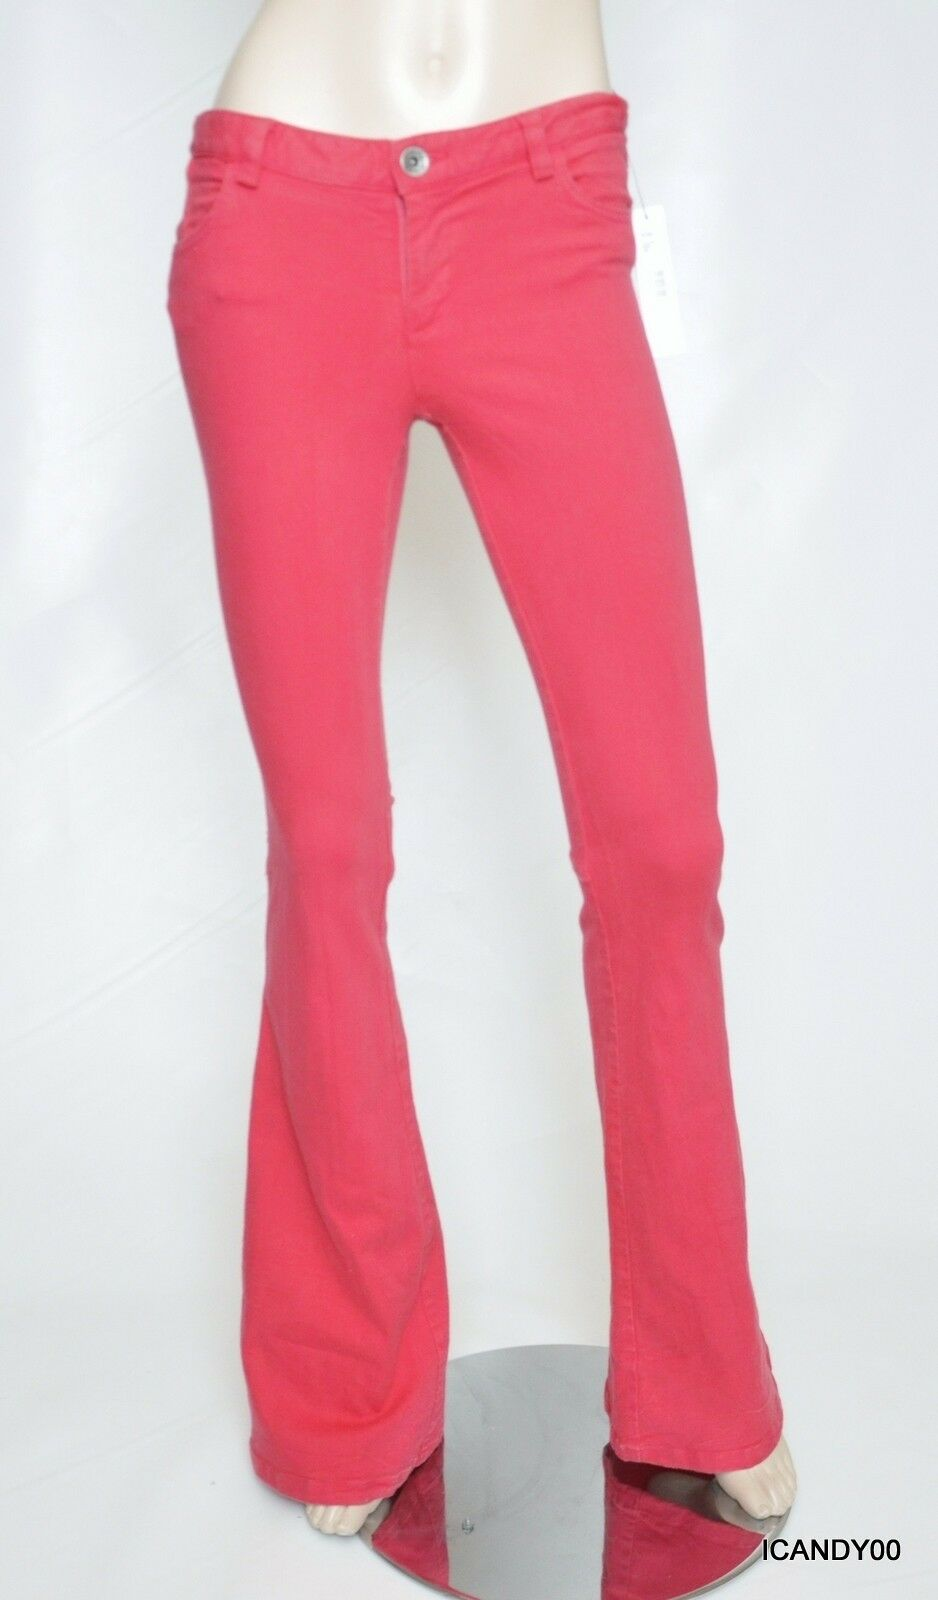 Nwt  198 Alice + Olivia Stacey Bell Stretch Flare Jeans Pants Trousers Pink 4